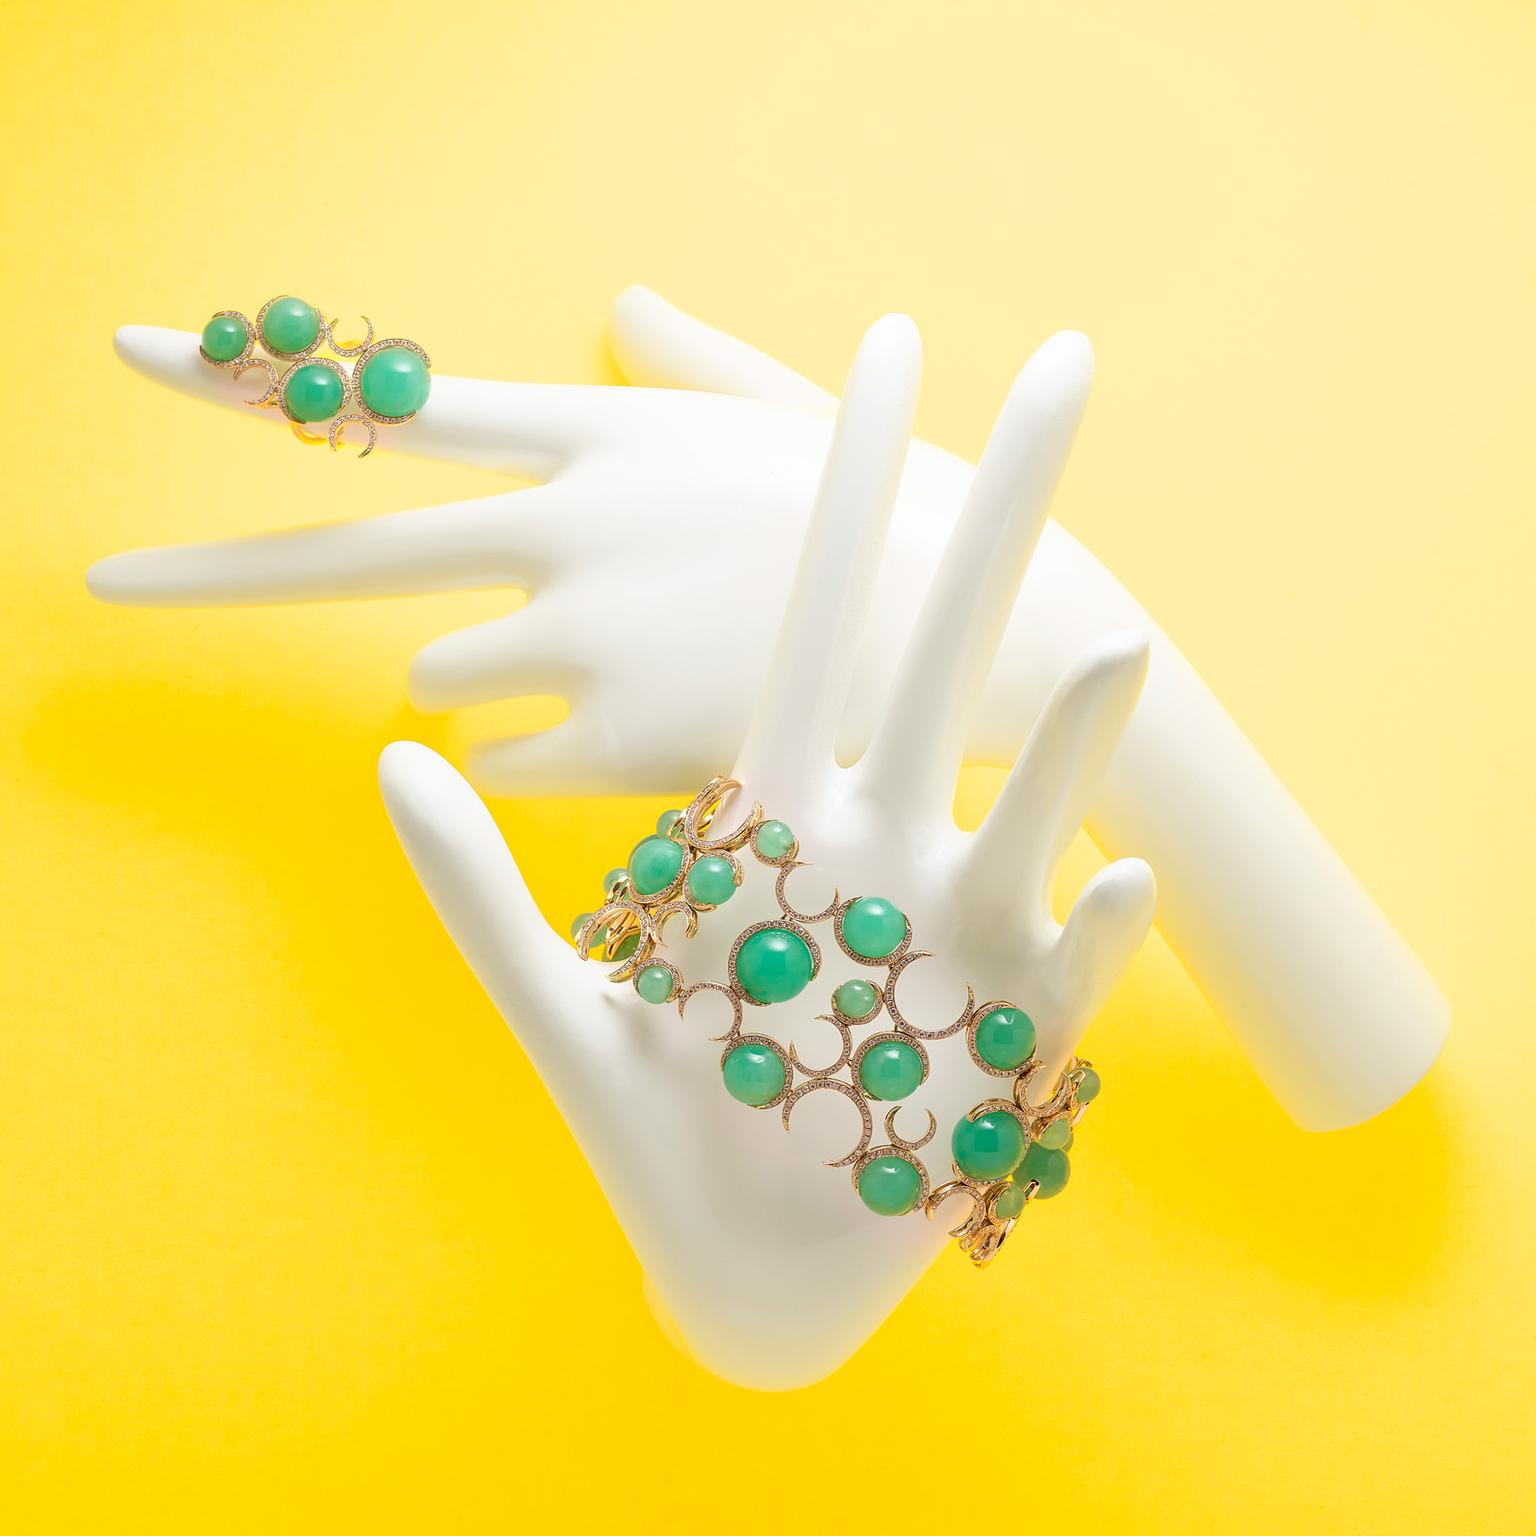 Christina Debs Candy Pop chrysoprase bracelet and ring